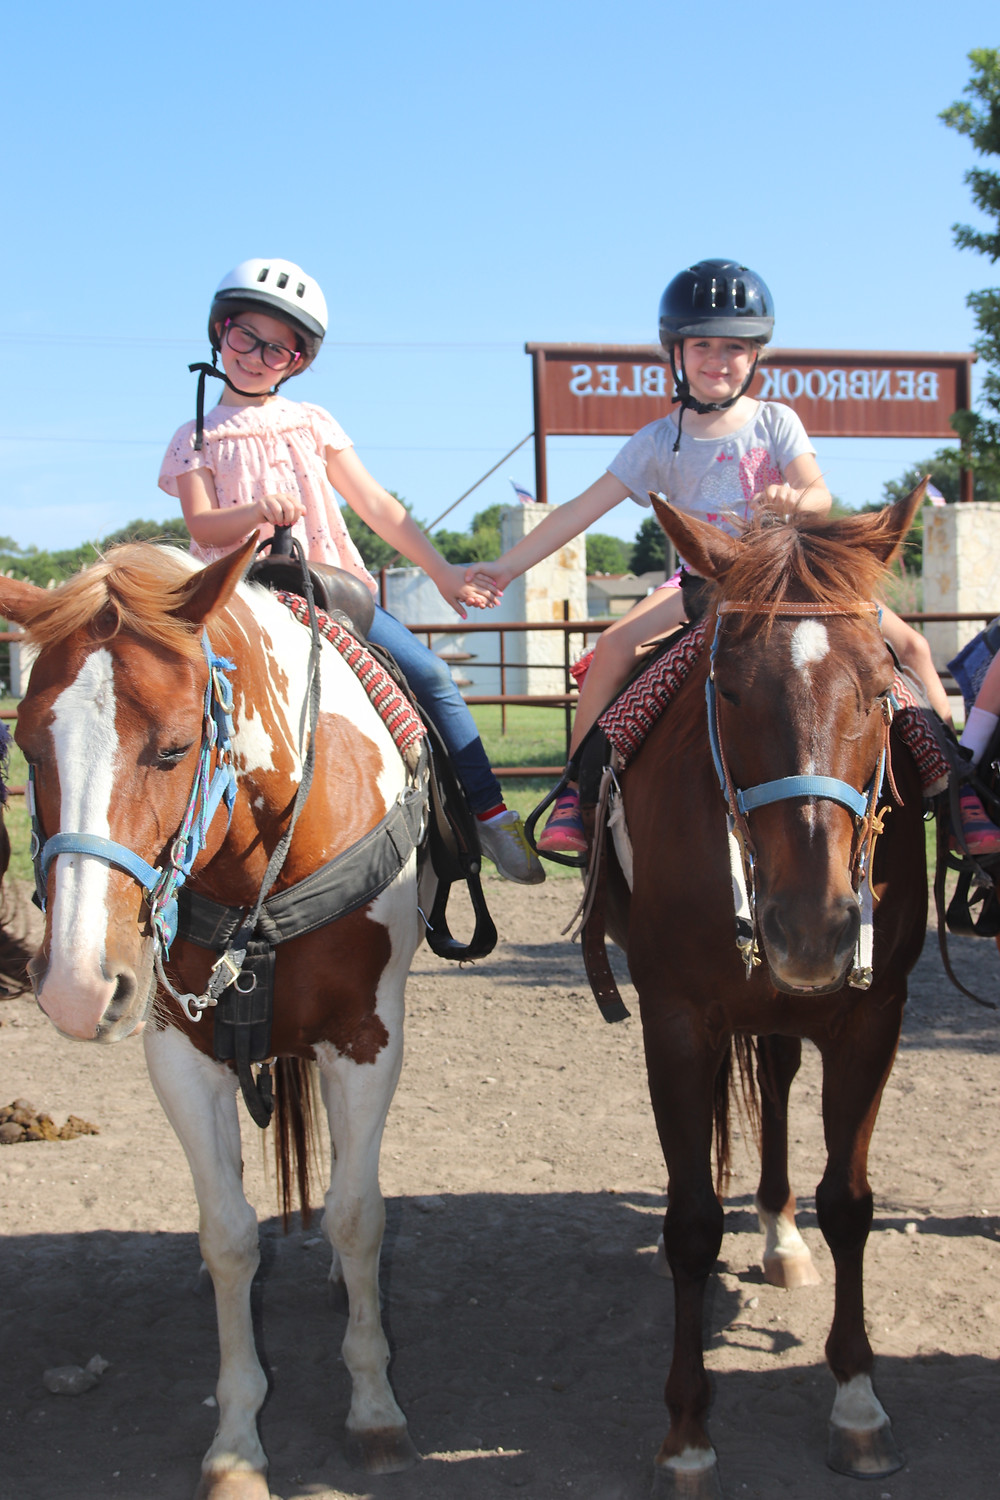 Benbrook Stables Riding Academy Riding School Horse Camp Summer Camp Spring Break Camp